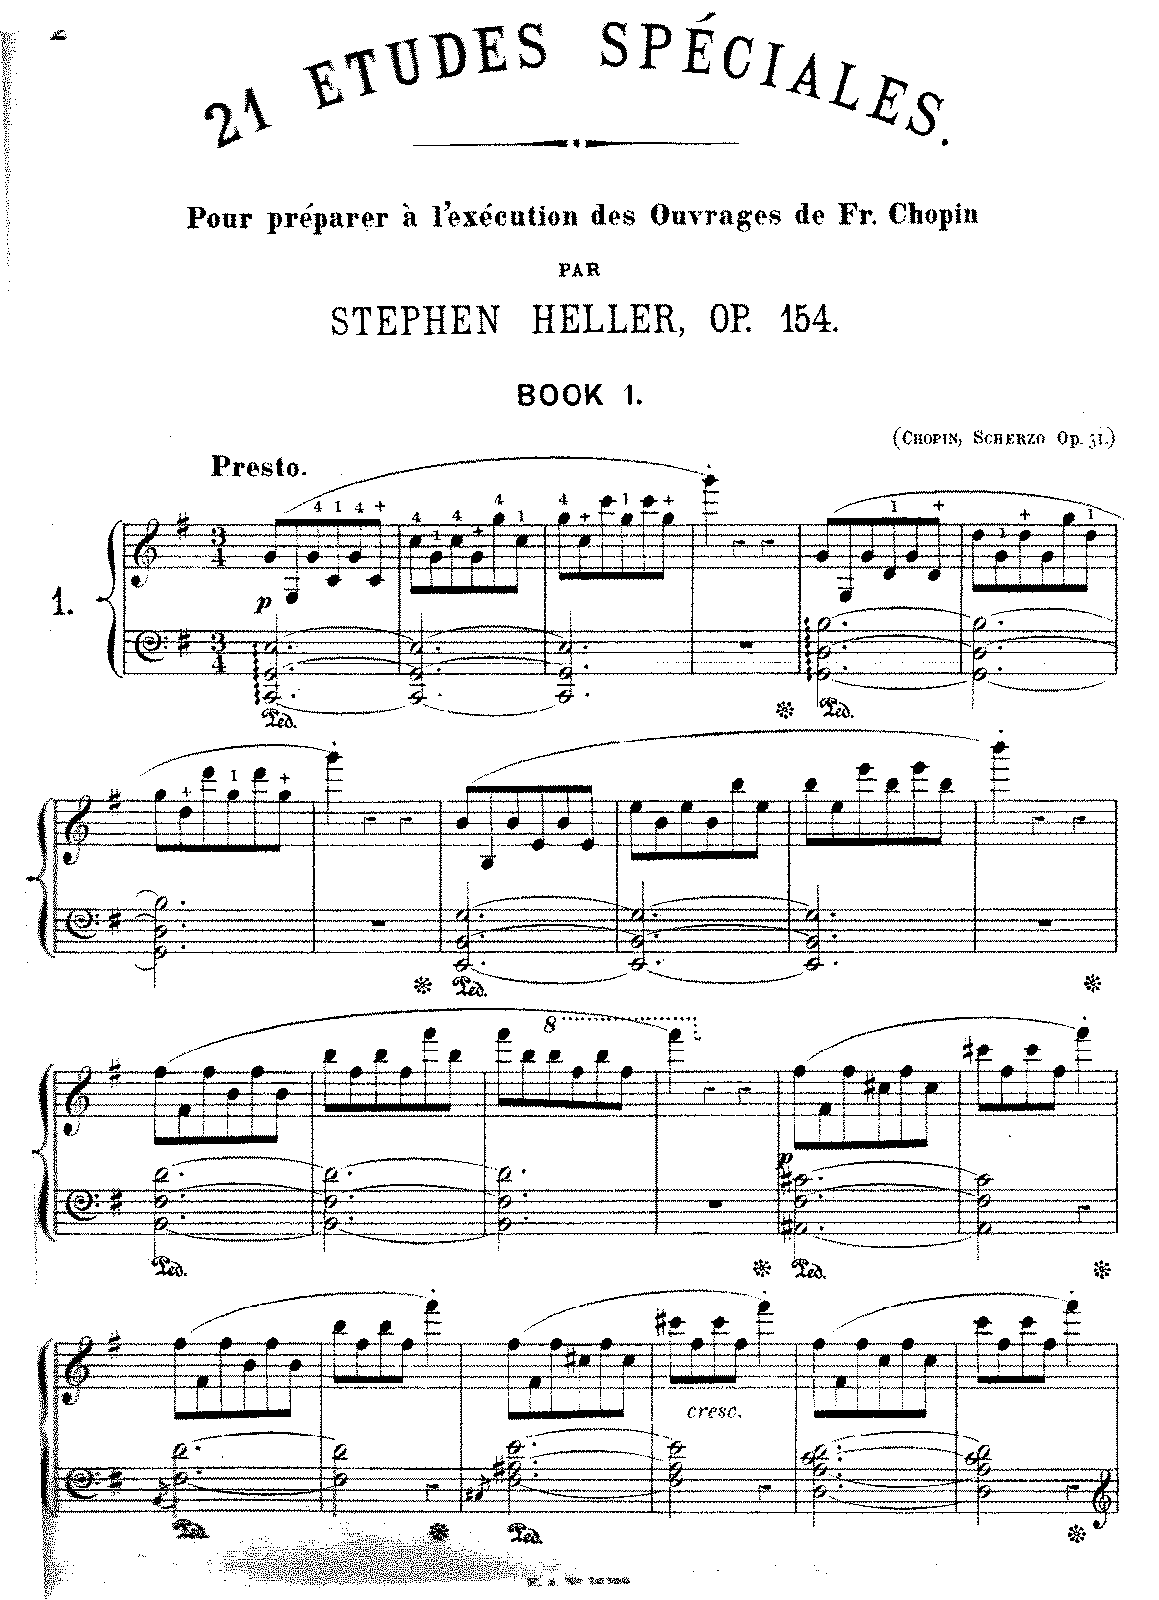 Heller - Op.154 - 21 Etudes Speciales after Chopin.pdf